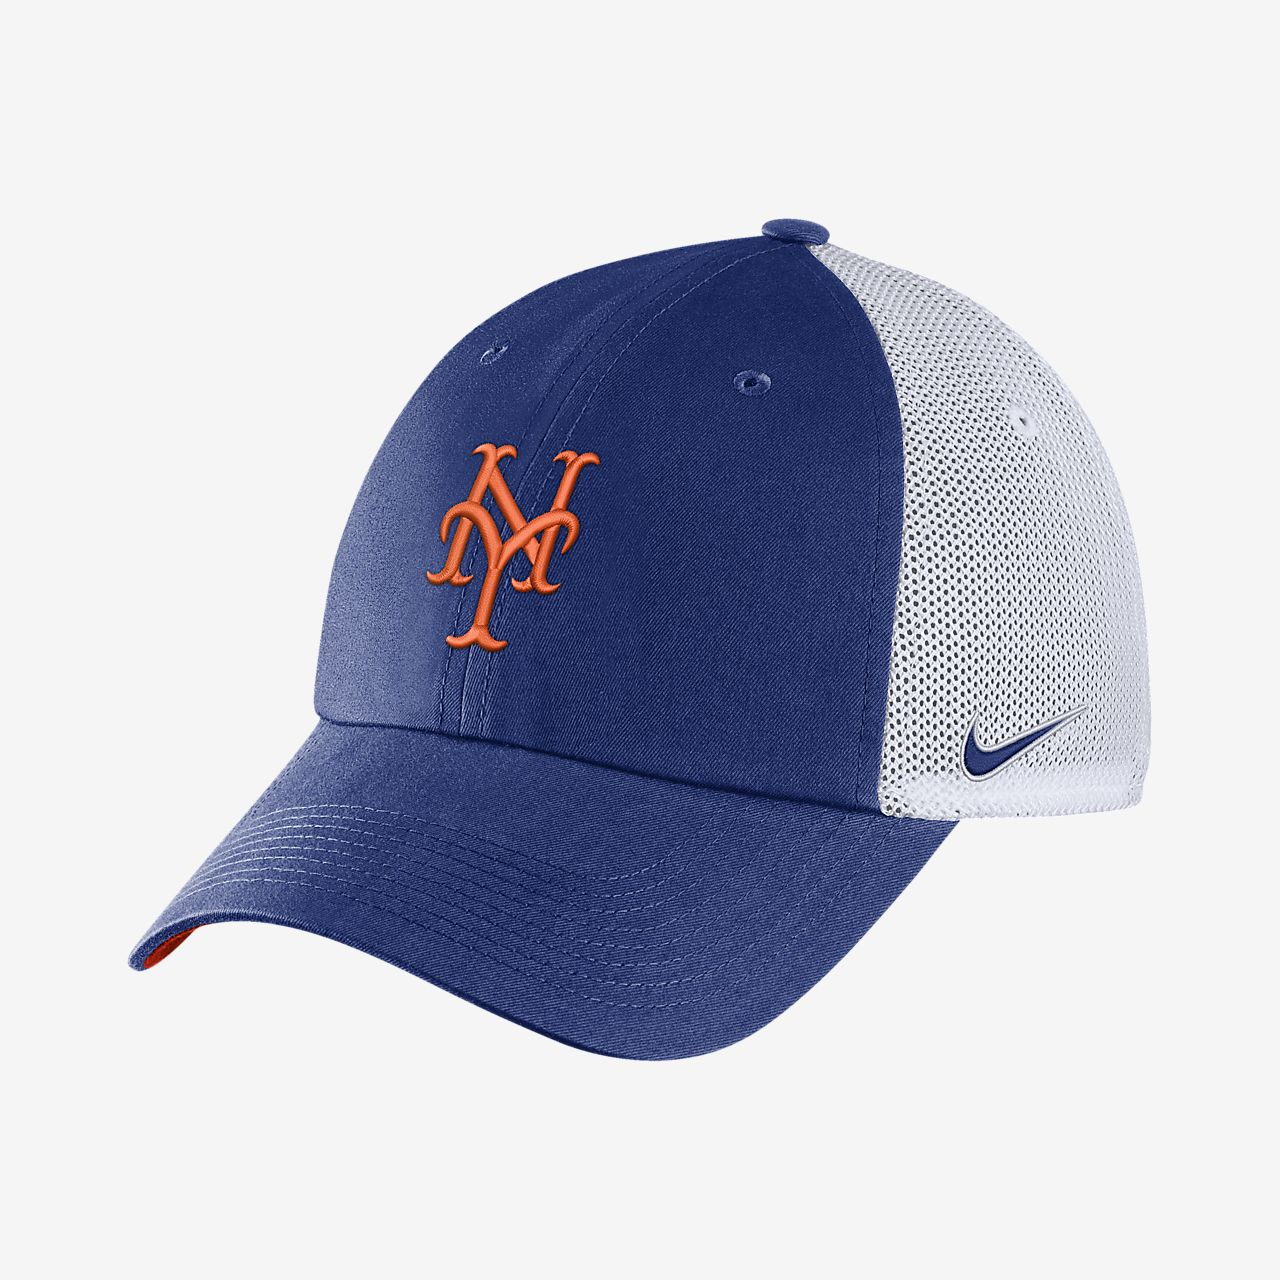 aliexpress for whole family factory price Nike Heritage86 (MLB Mets) Trucker Hat. Nike.com